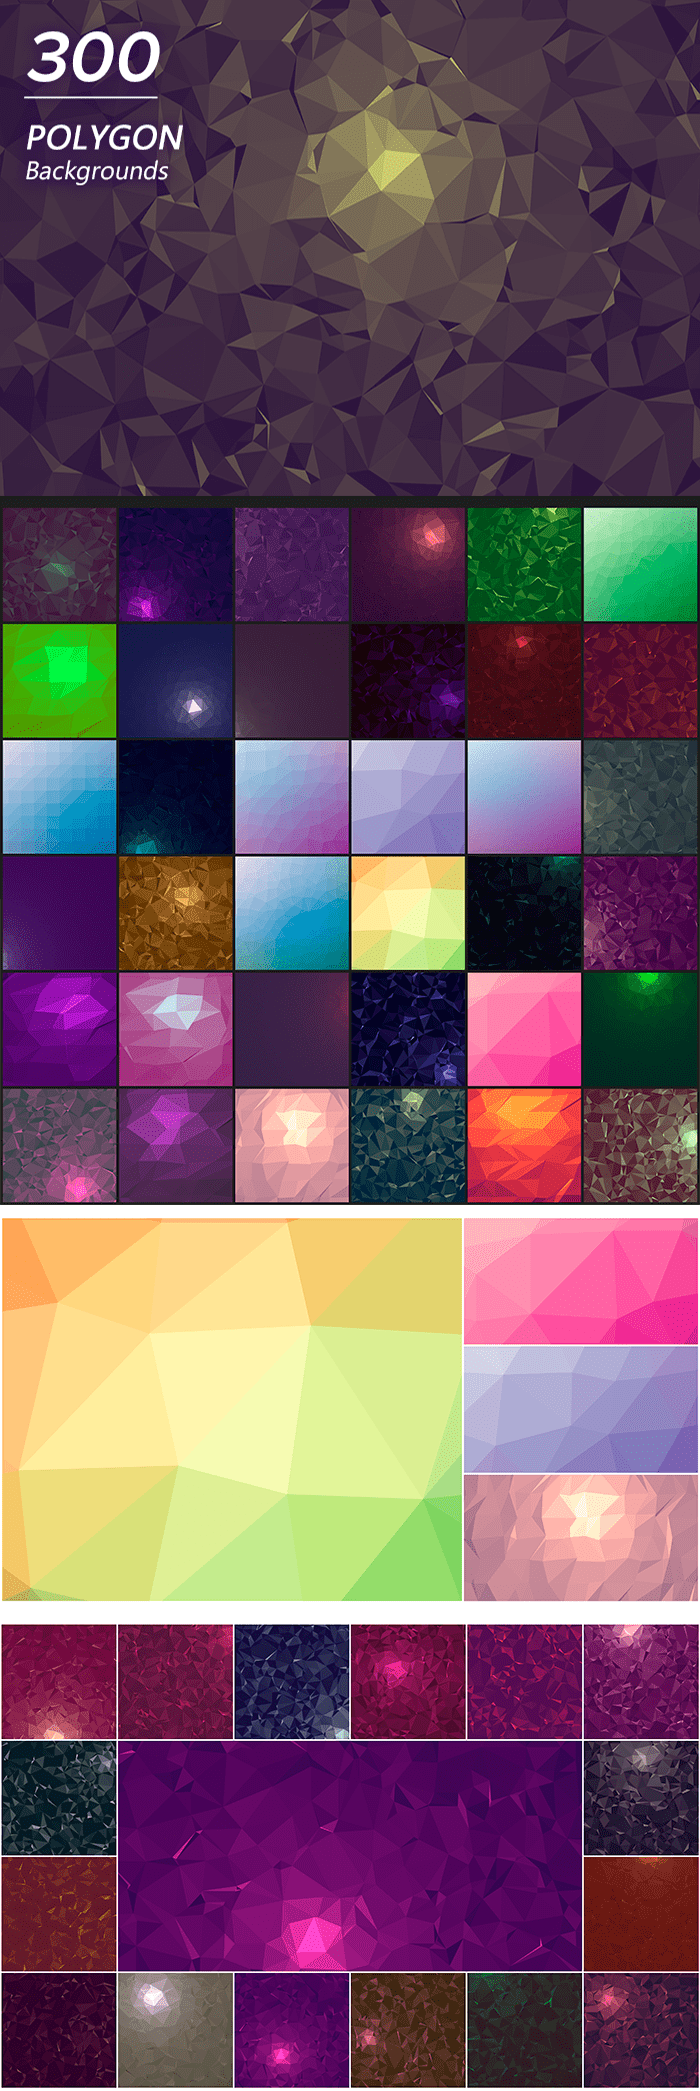 Design, Photo & Graphics Software, 2000+ High Resolution Backgrounds Screenshot